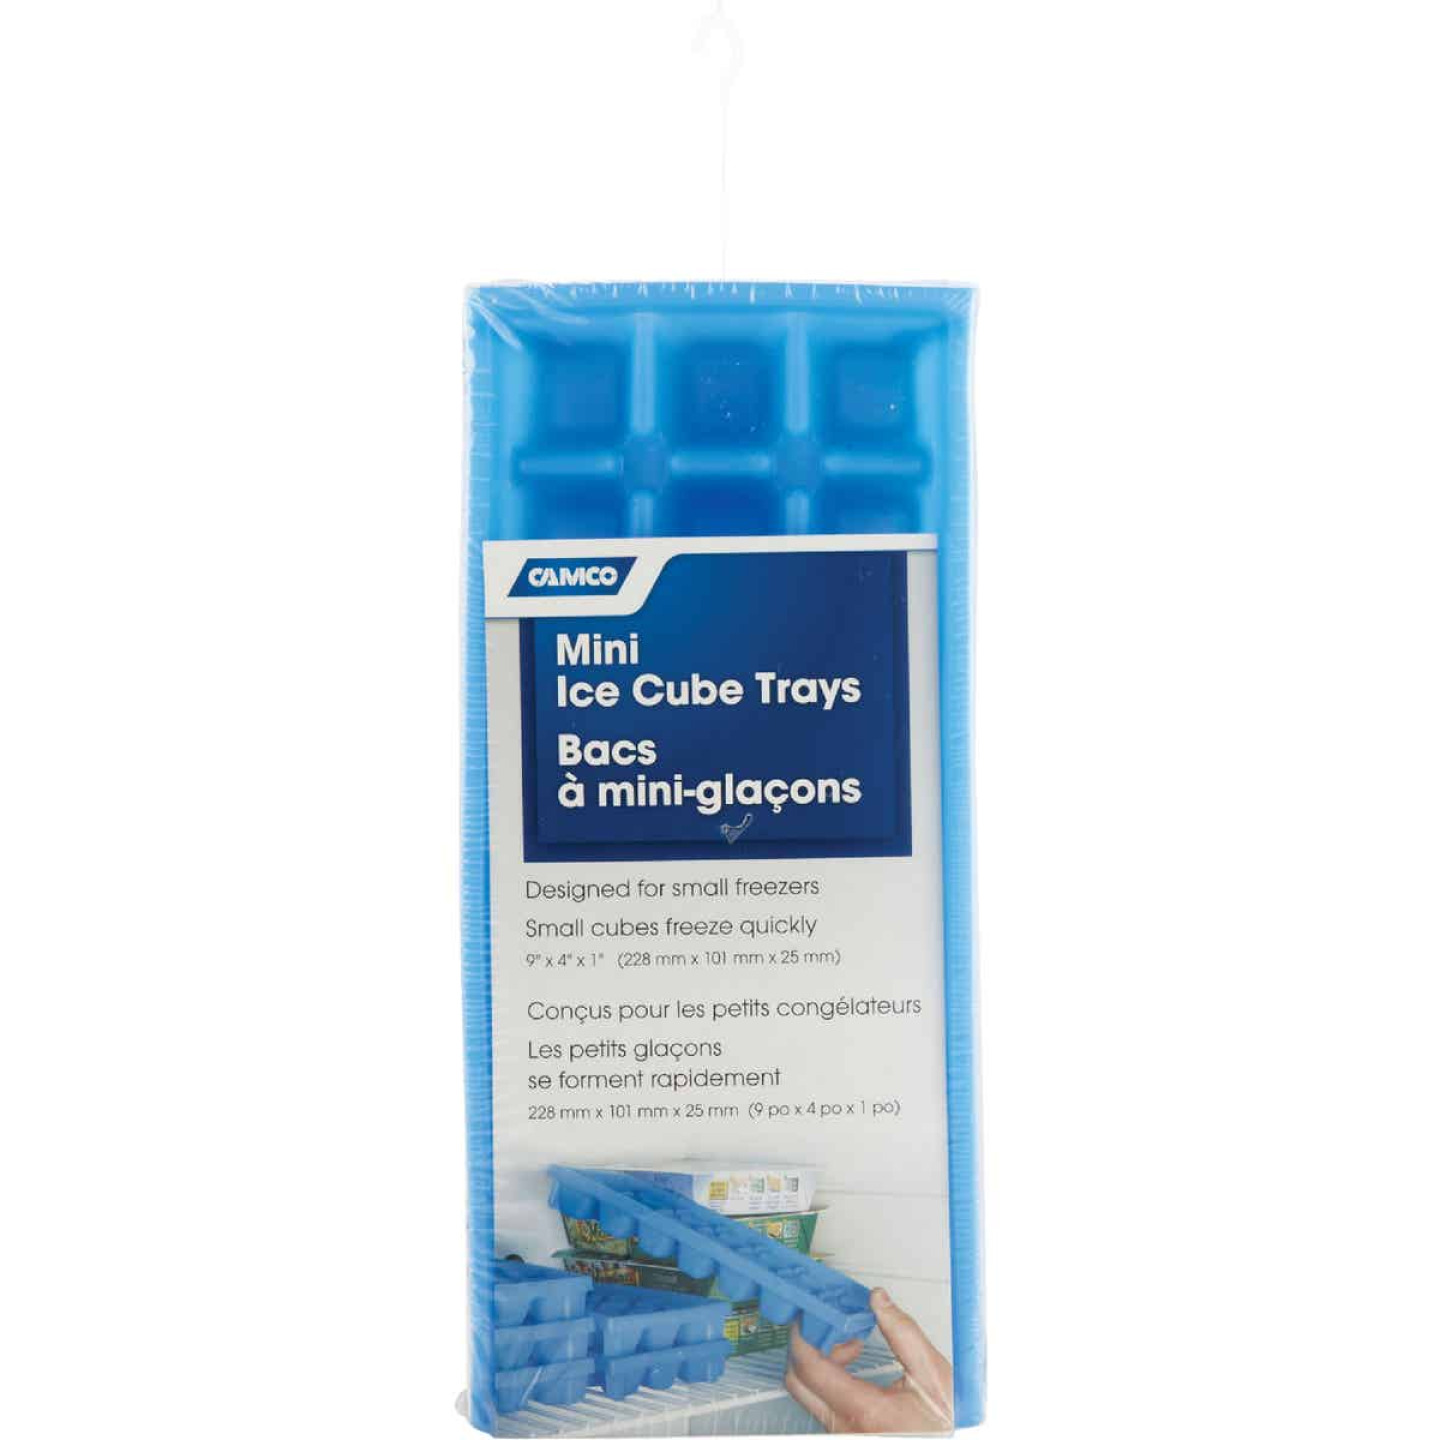 Camco 9 In. L x 4 In. RV Mini Ice Cube Tray, (2-Pack) Image 2